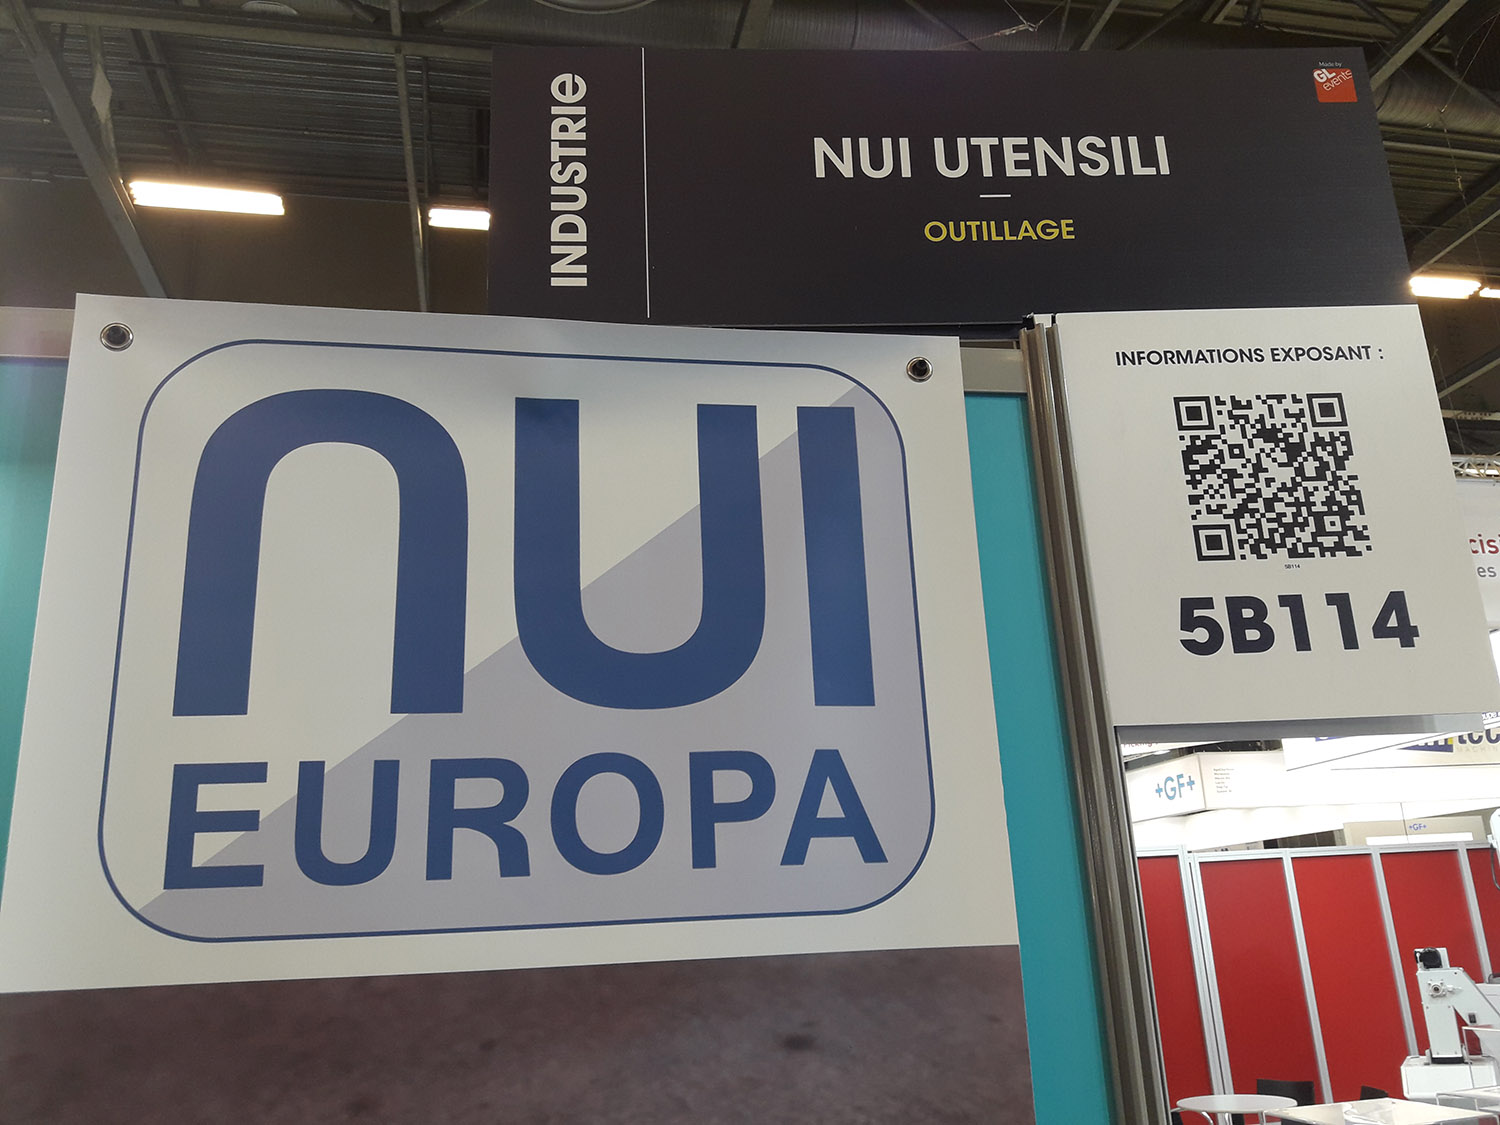 Nui Utensili Europa Cutting Tools Industrie Paris Drilling